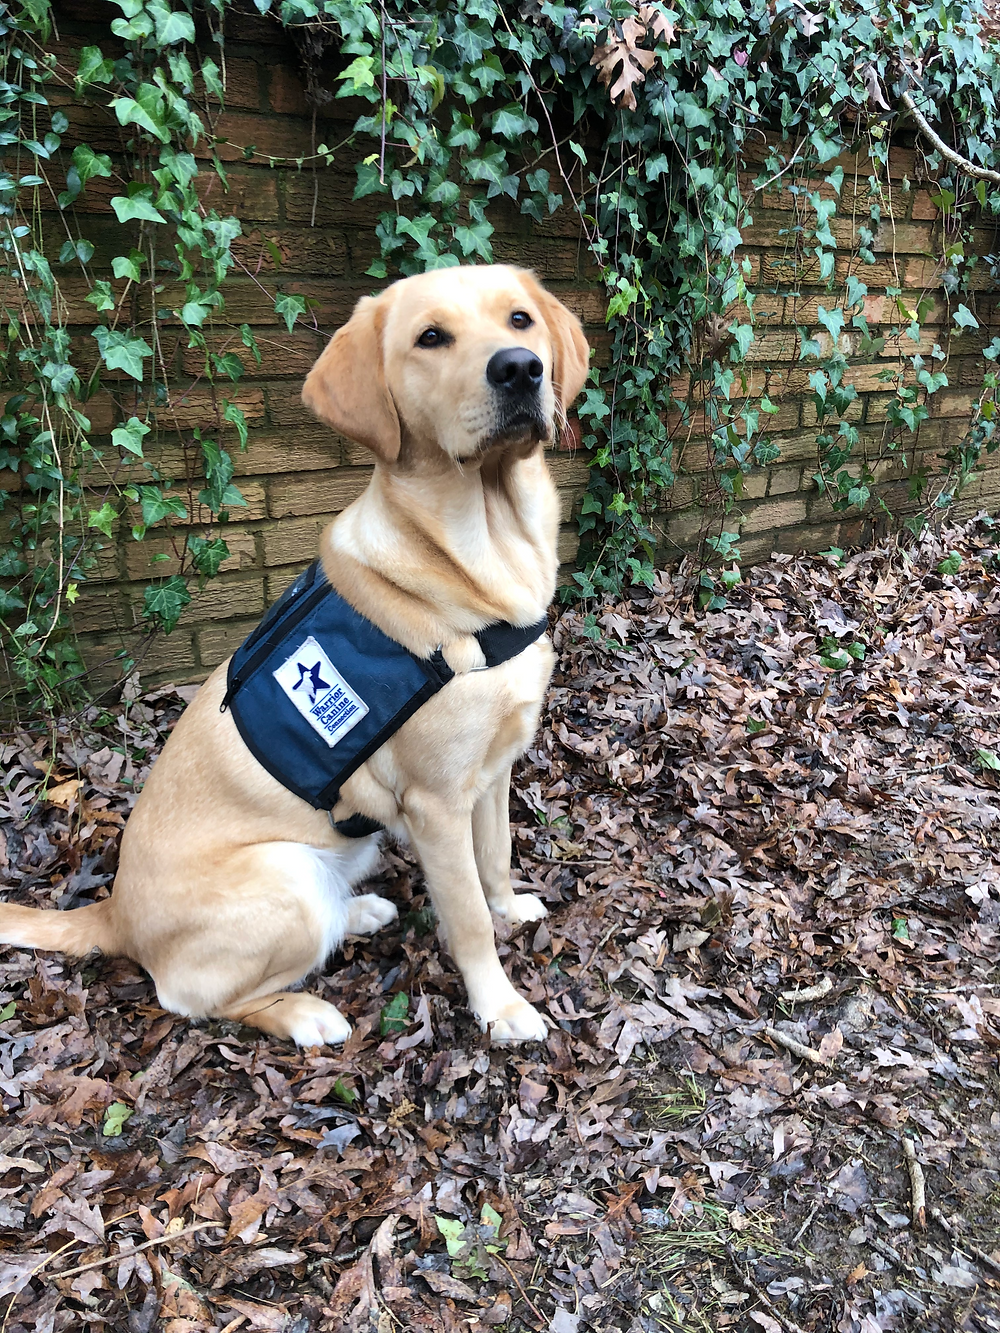 puppy golden retriever lab service dog vest cute adorable warrior canine connection outside leaves